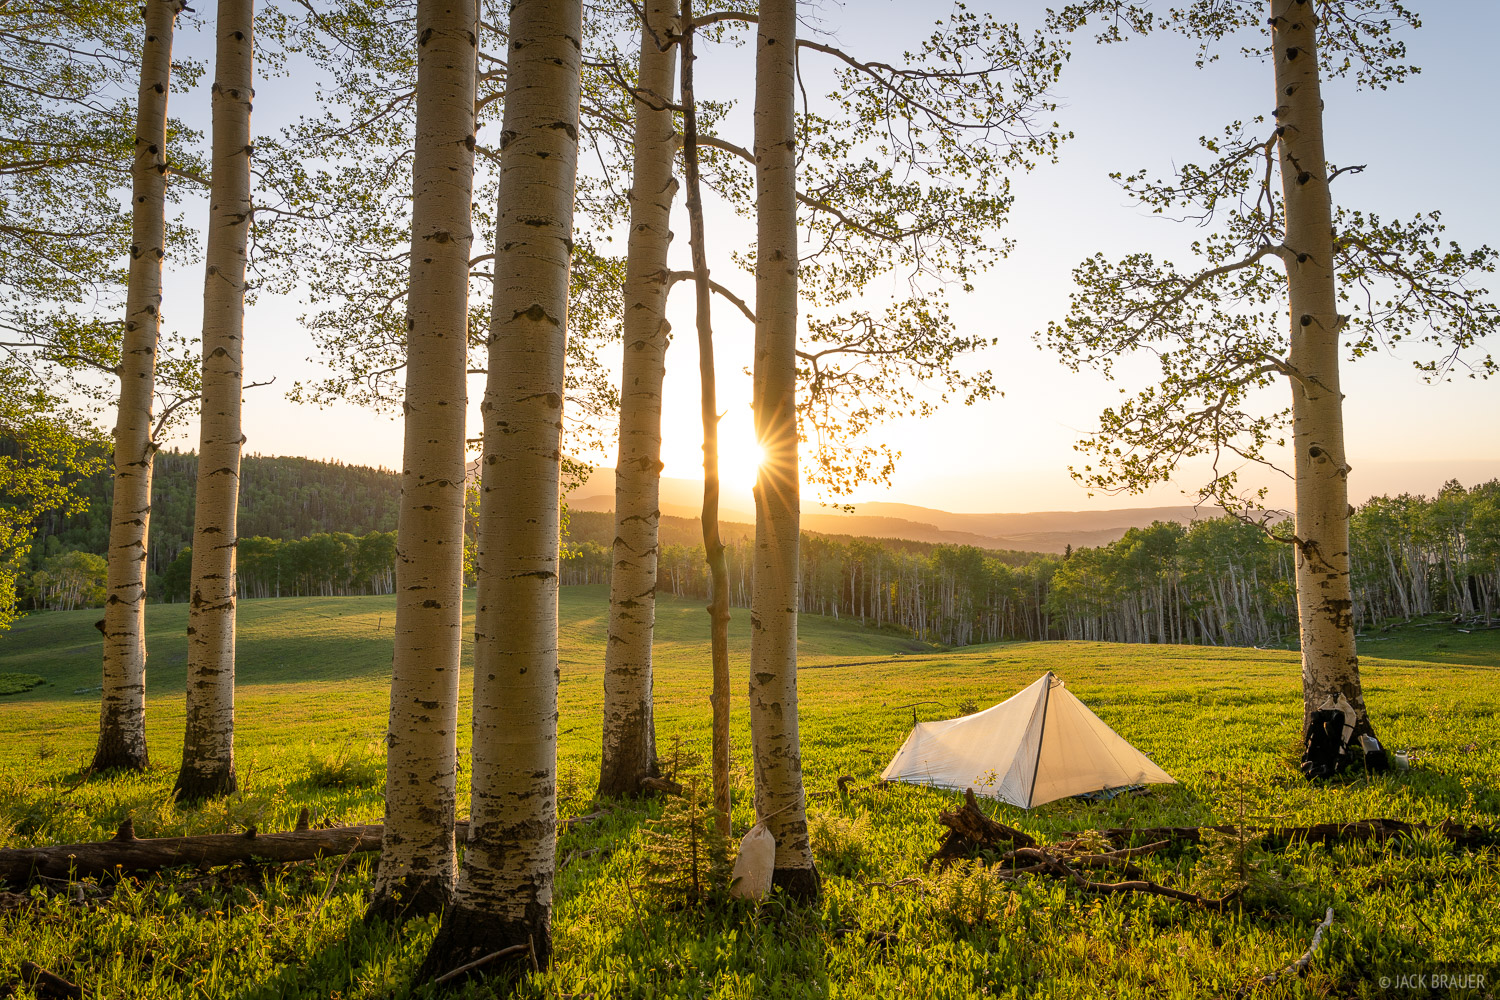 An idyllic campsite in some aspens next to a mountain meadow.